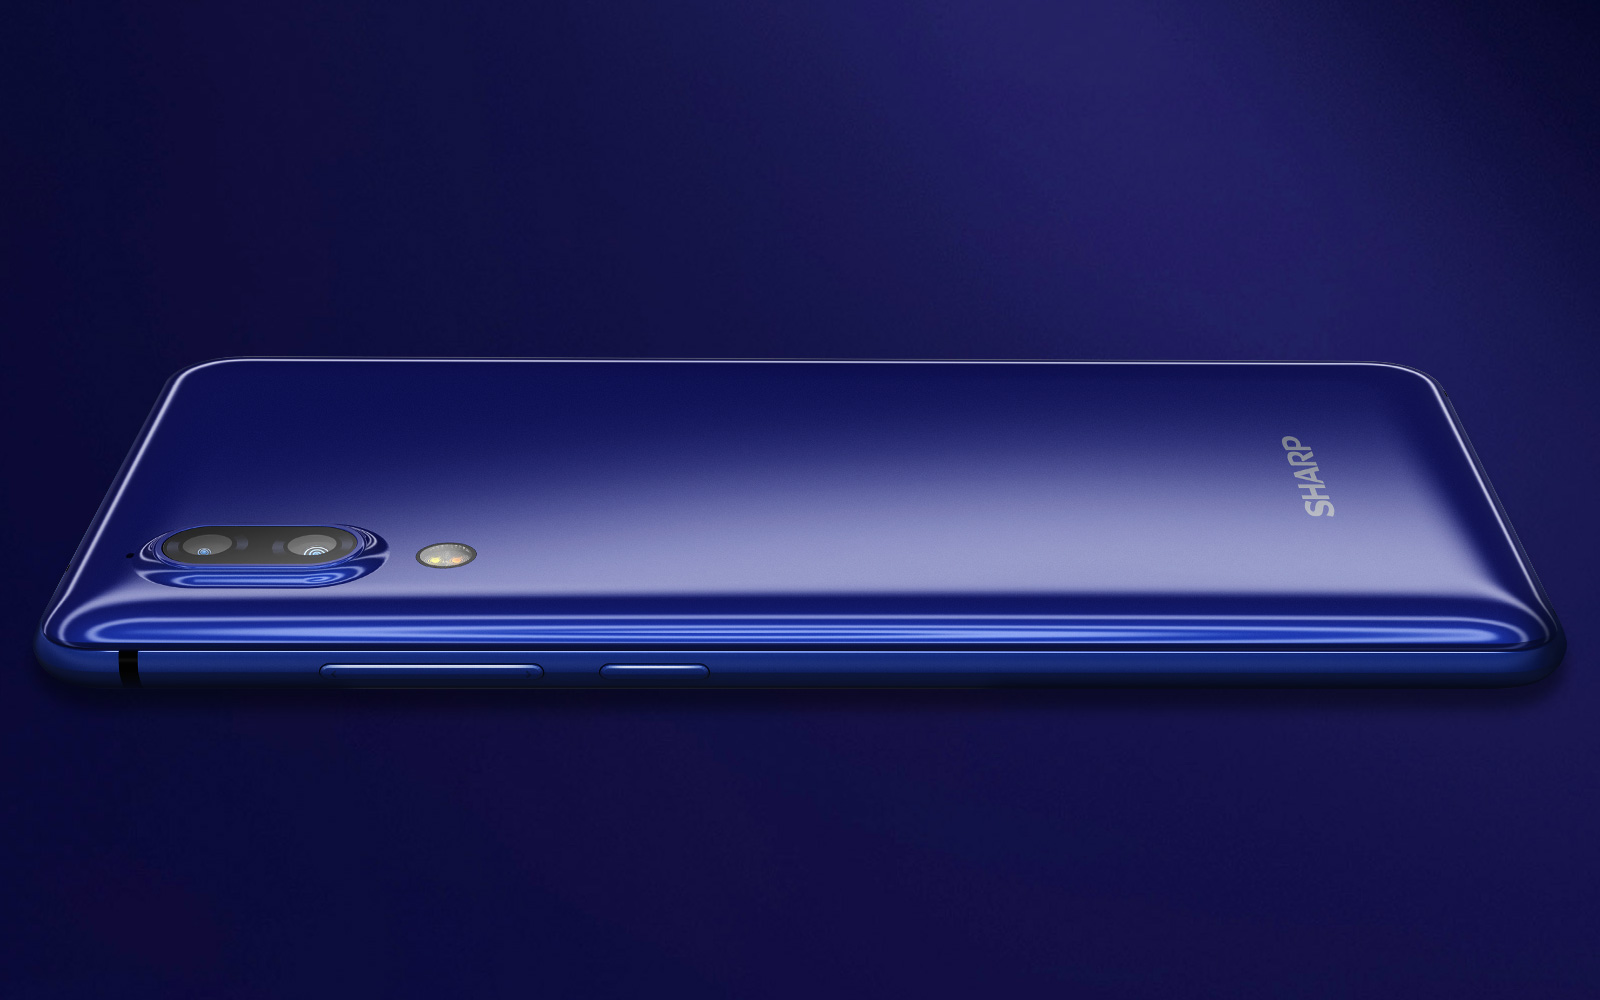 Sharp announces the Aquos S2 with a near bezel-free design and mid